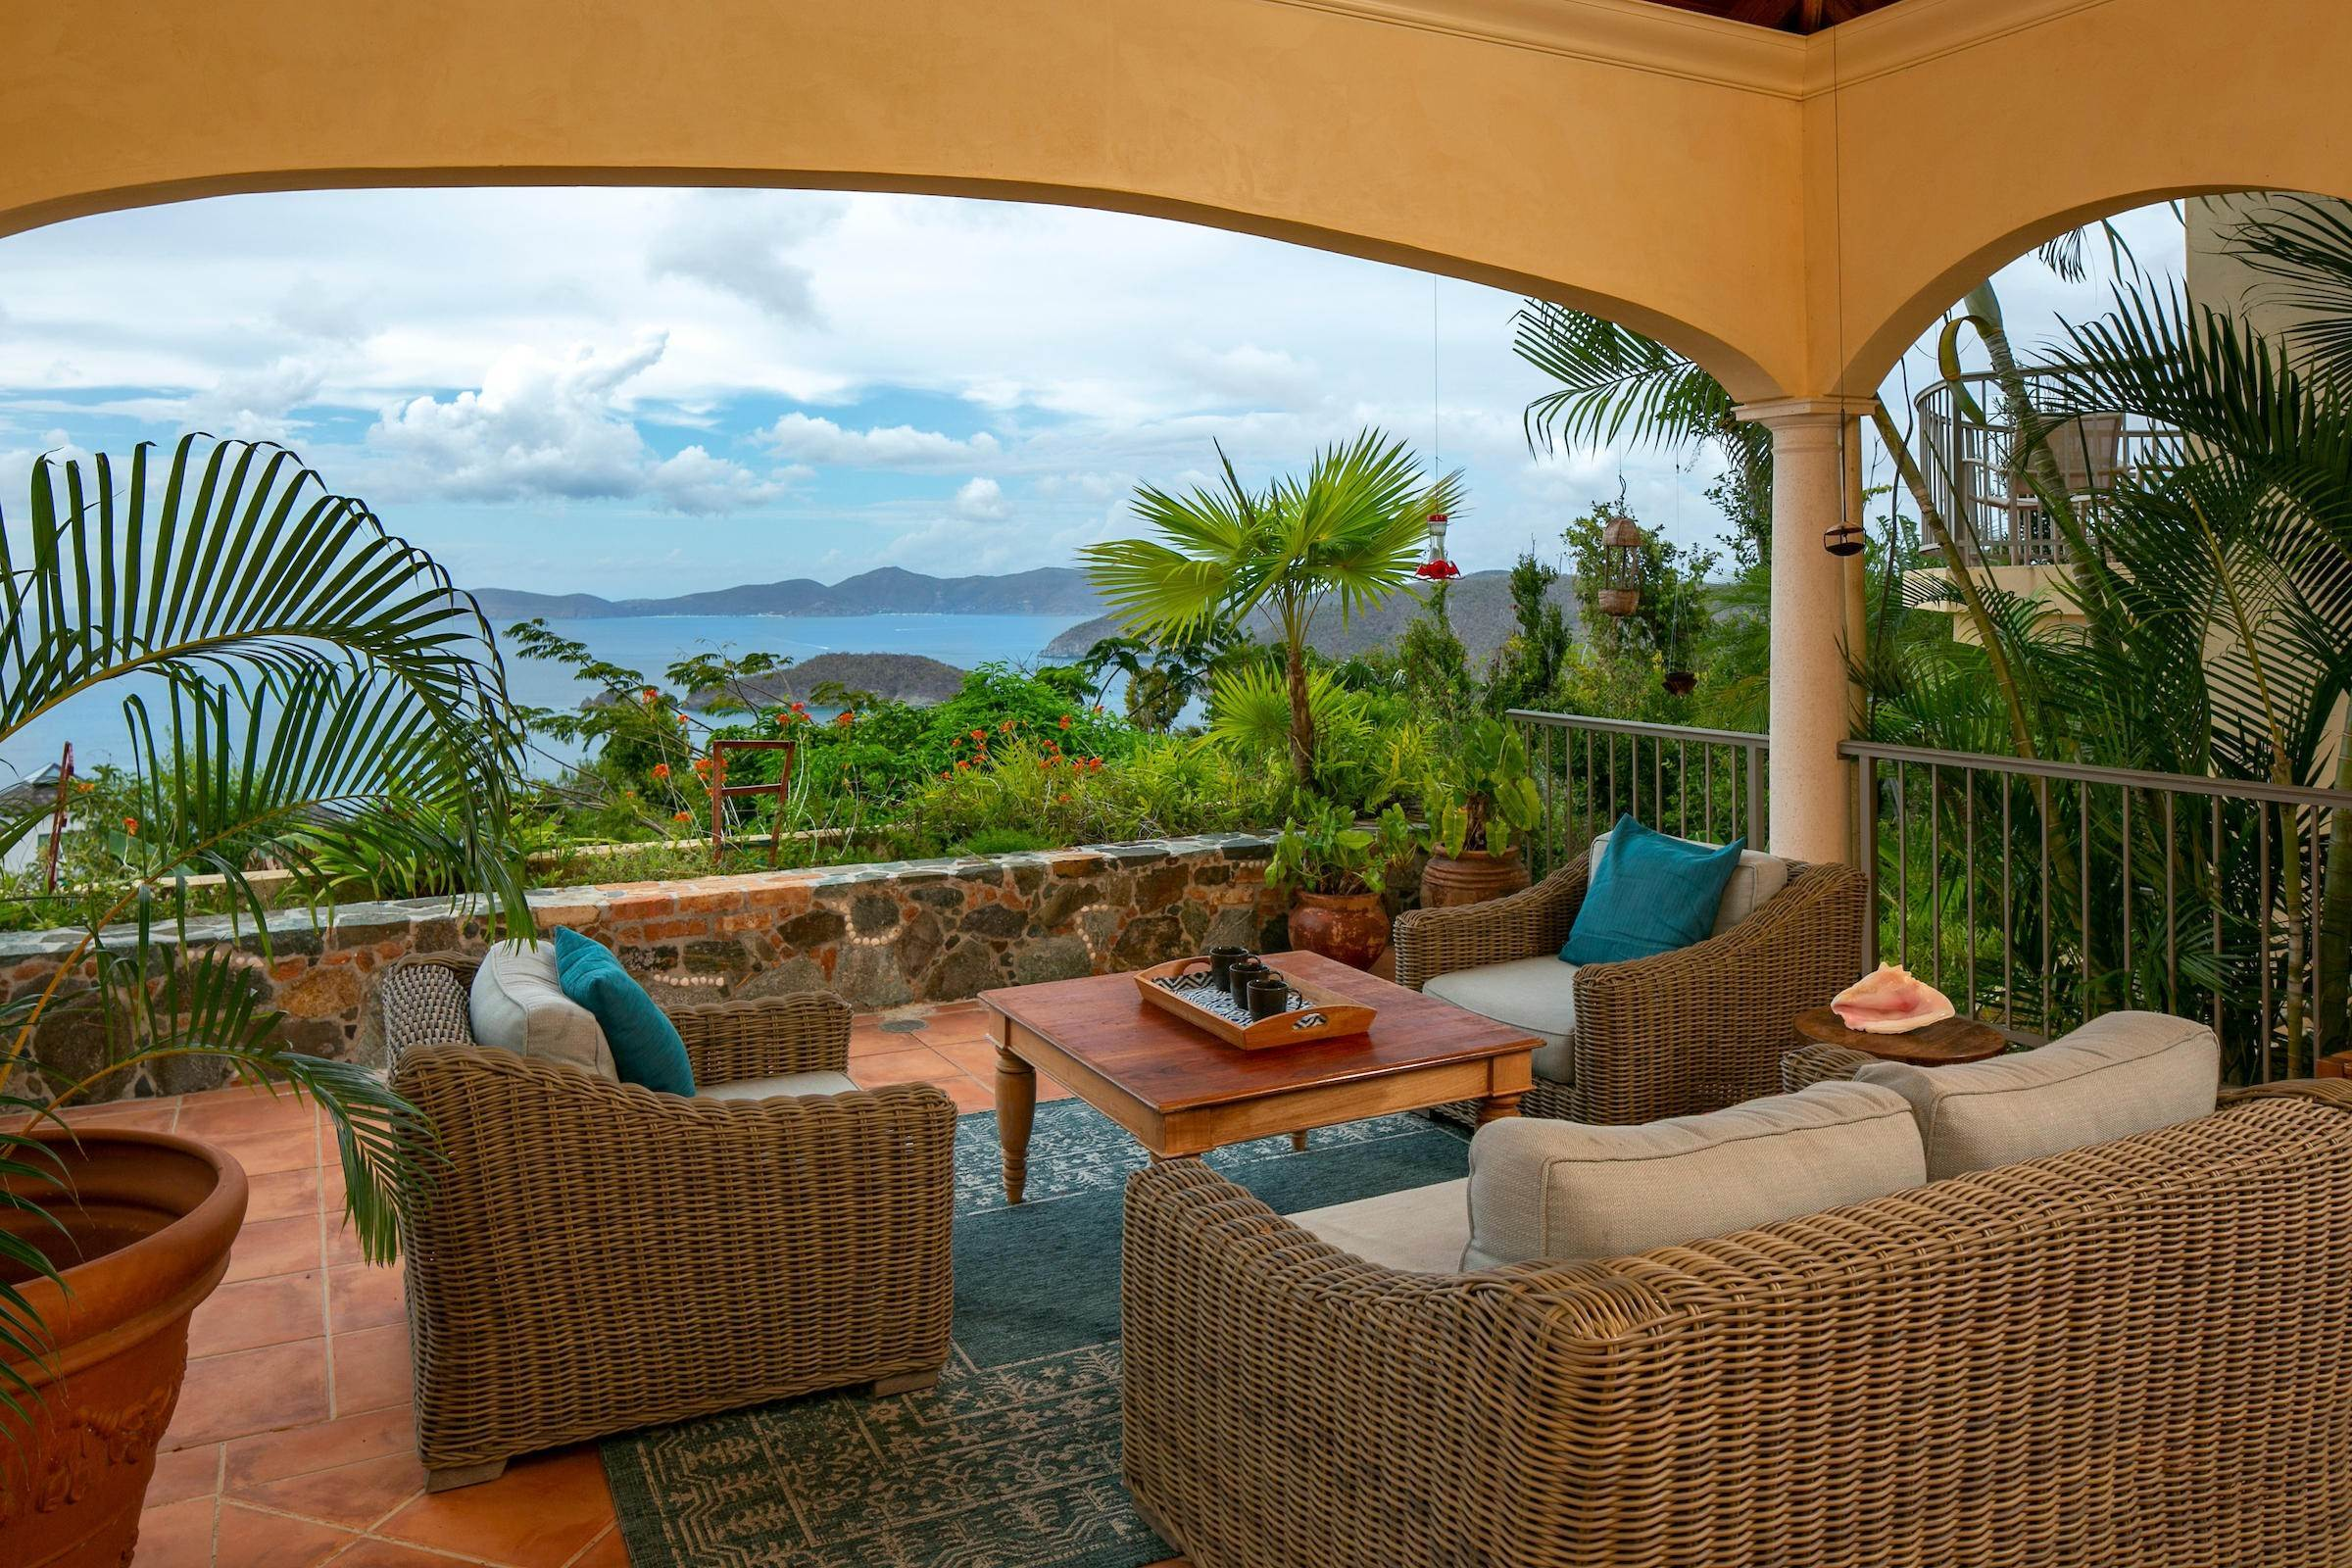 Single Family Homes for Sale at Catherineberg St John, Virgin Islands 00830 United States Virgin Islands